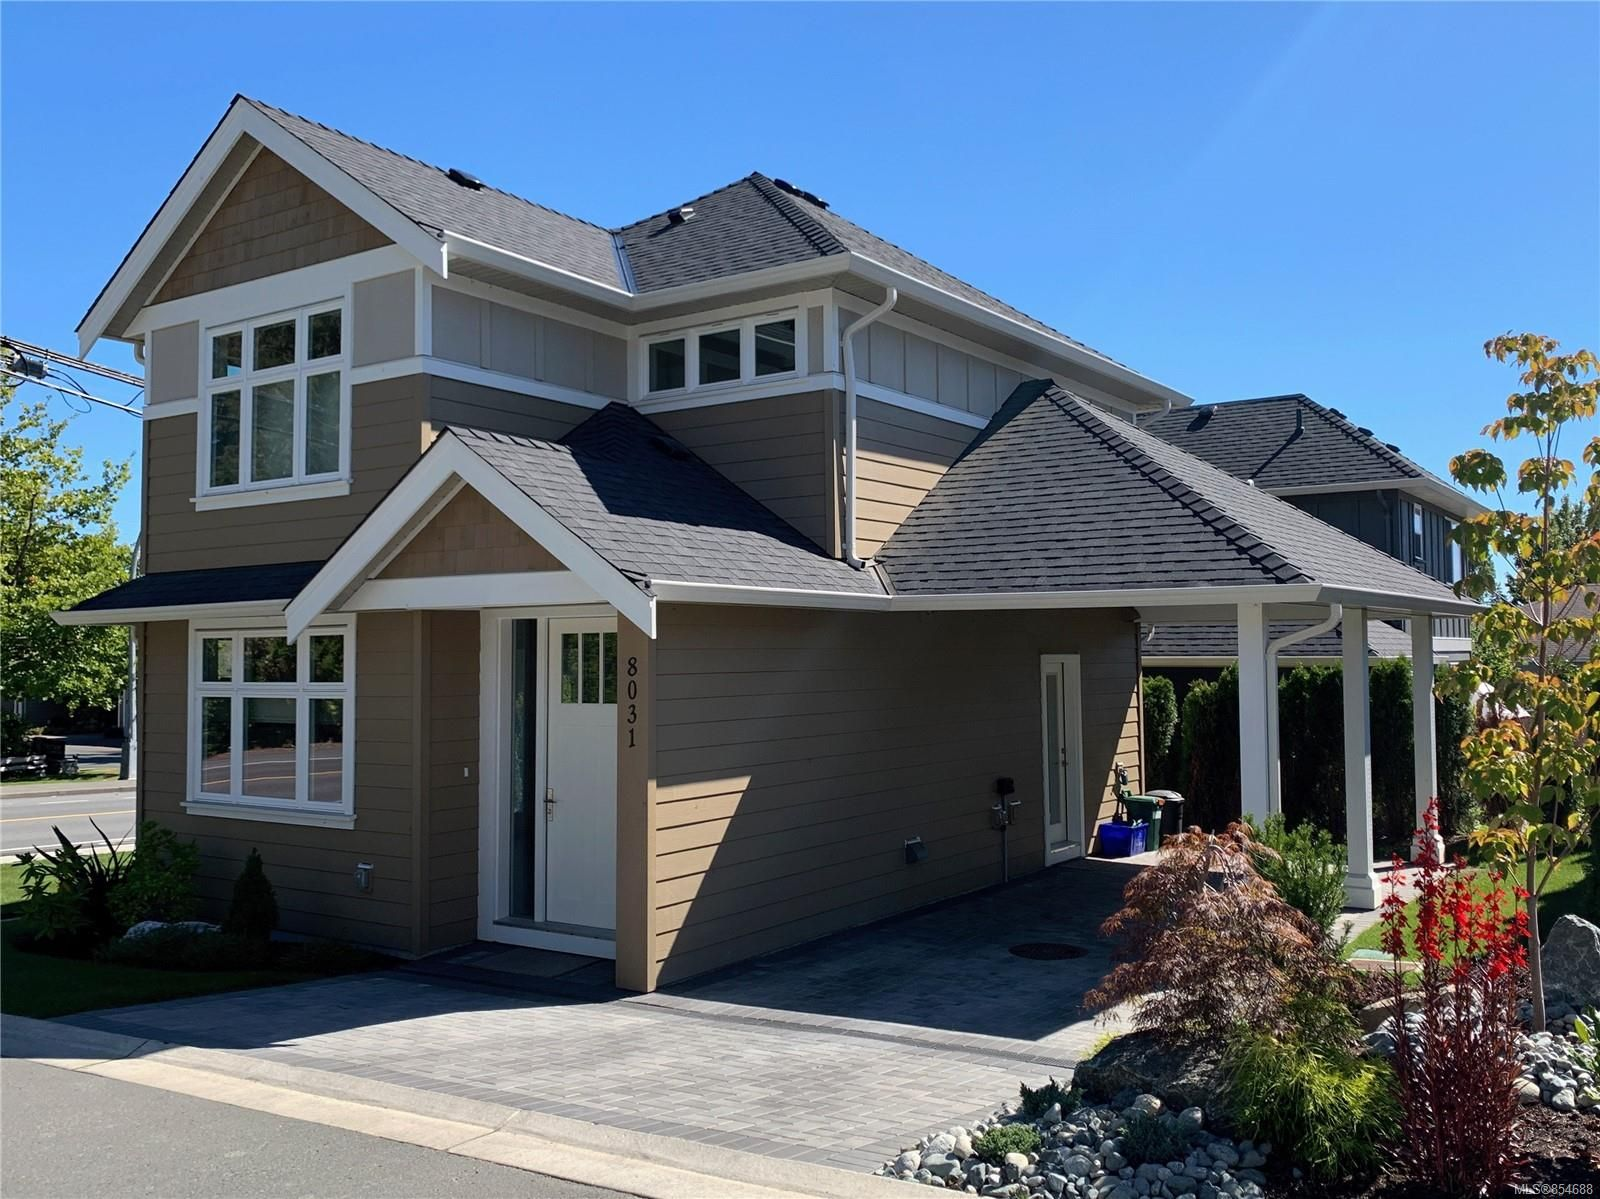 Main Photo: 8031 Huckleberry Crt in : CS Saanichton House for sale (Central Saanich)  : MLS®# 854688